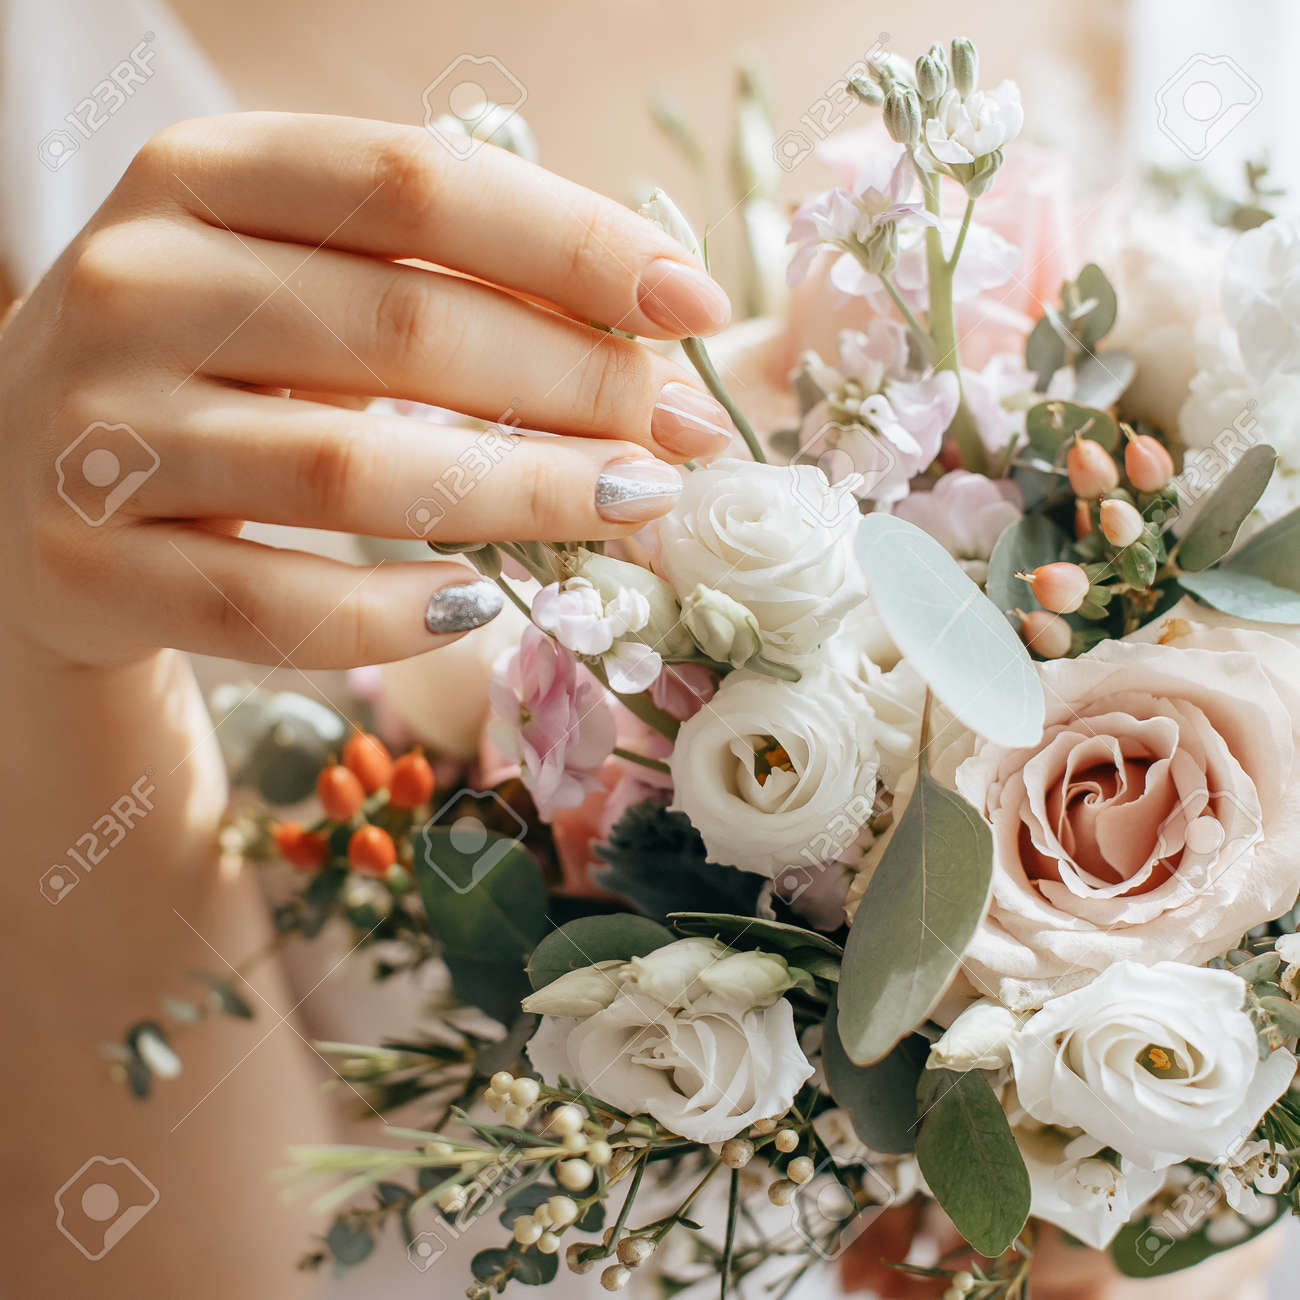 Bride holding wedding bouquet with white and pink flowers - 173799847